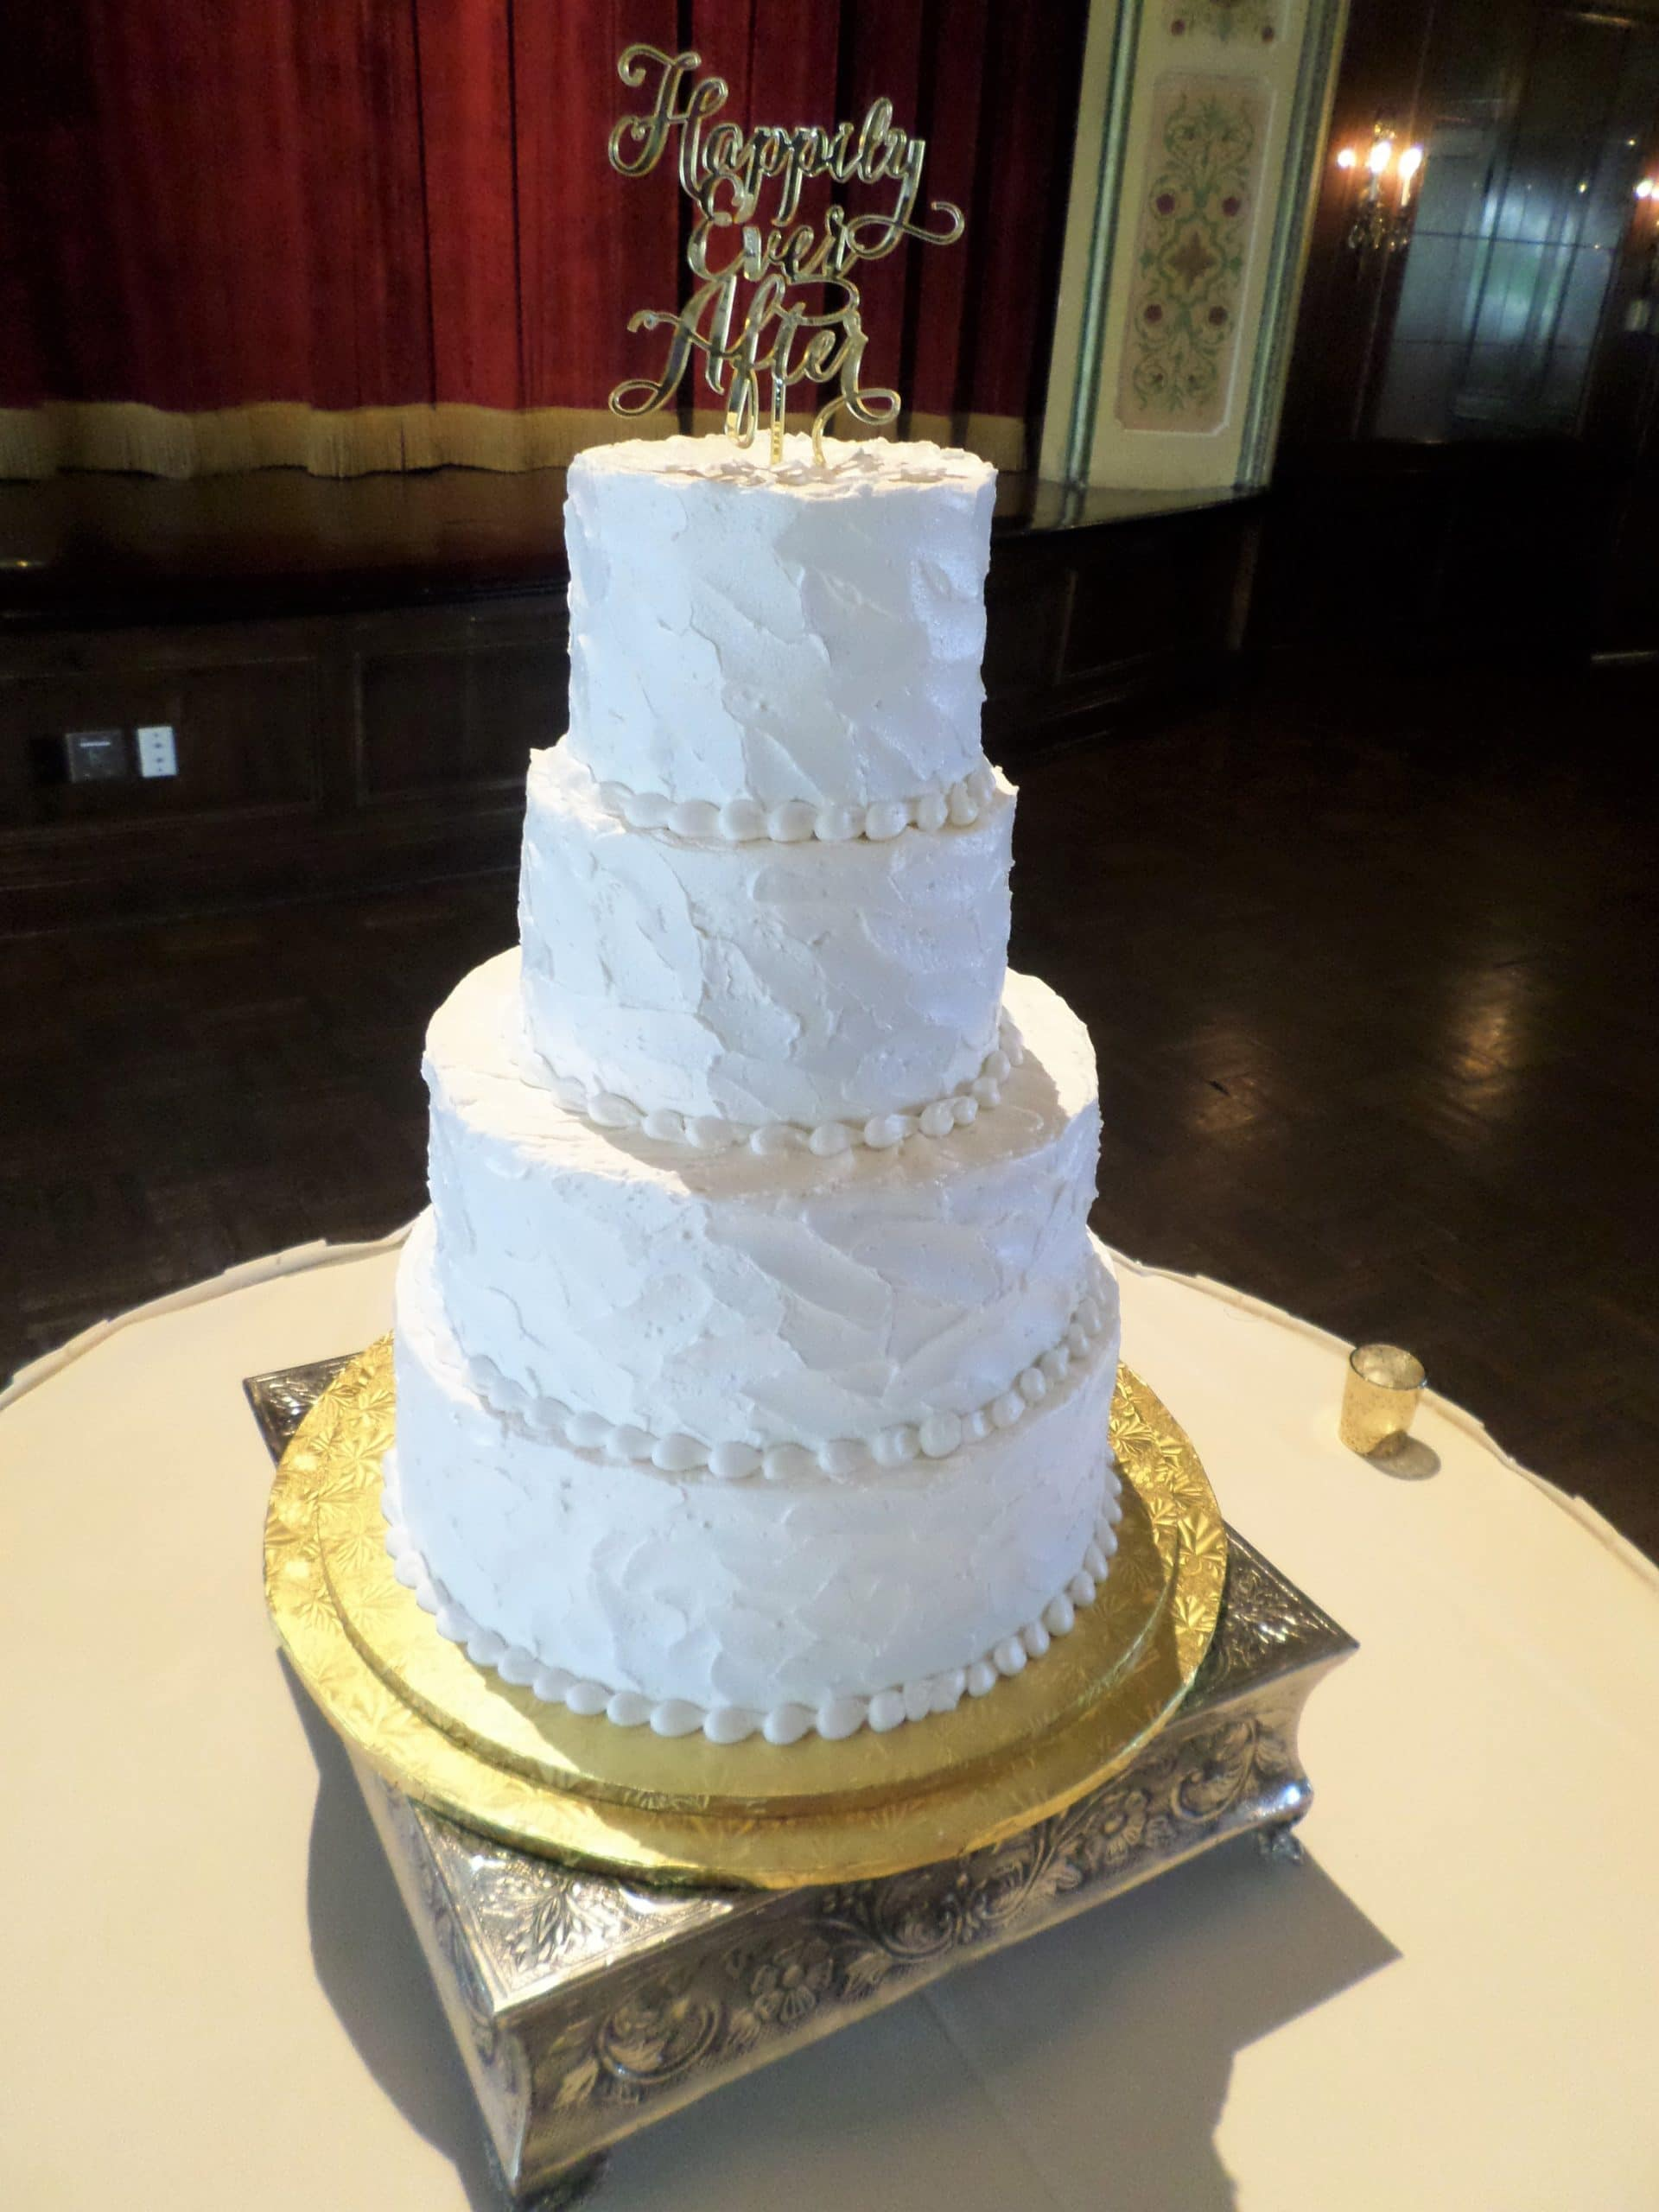 Sam Wedding Cake.Wedding Cake Simply Aggie S Stucco 2 Aggie S Bakery Cake Shop